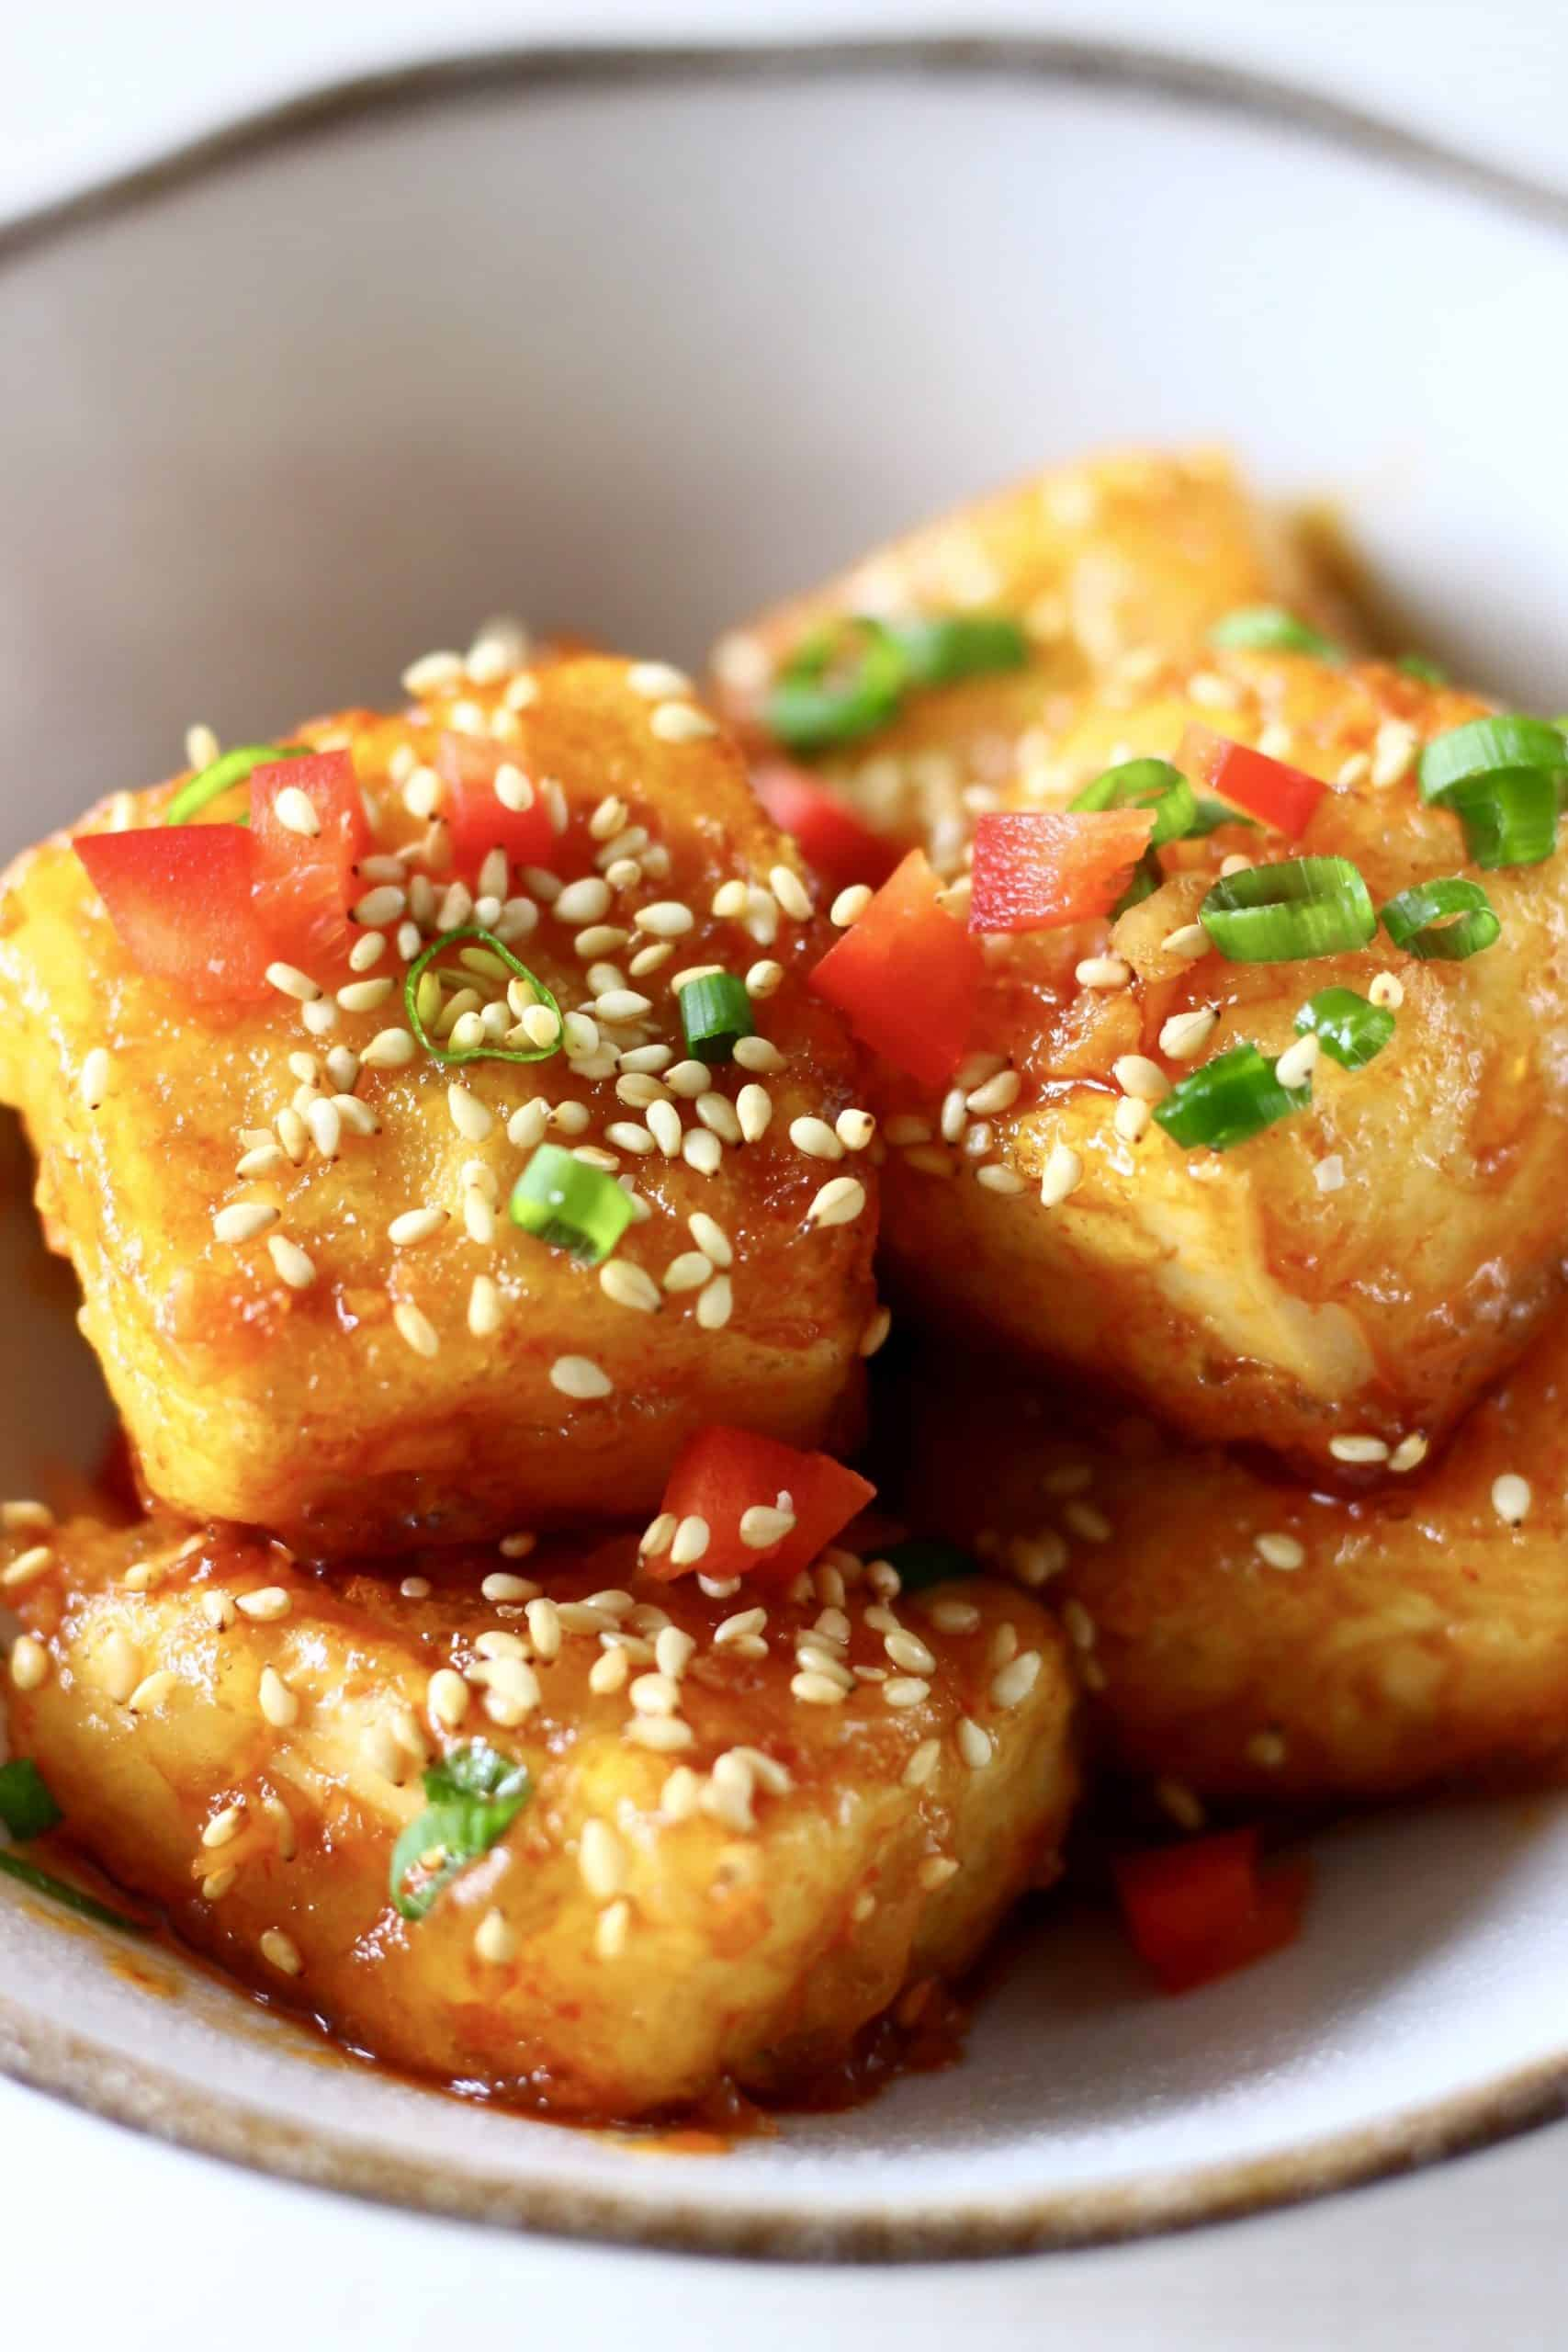 Cubes of spicy tofu in a red sauce sprinkled with sesame seeds, sliced spring onions and chilli in a white bowl with a brown rim against a white background